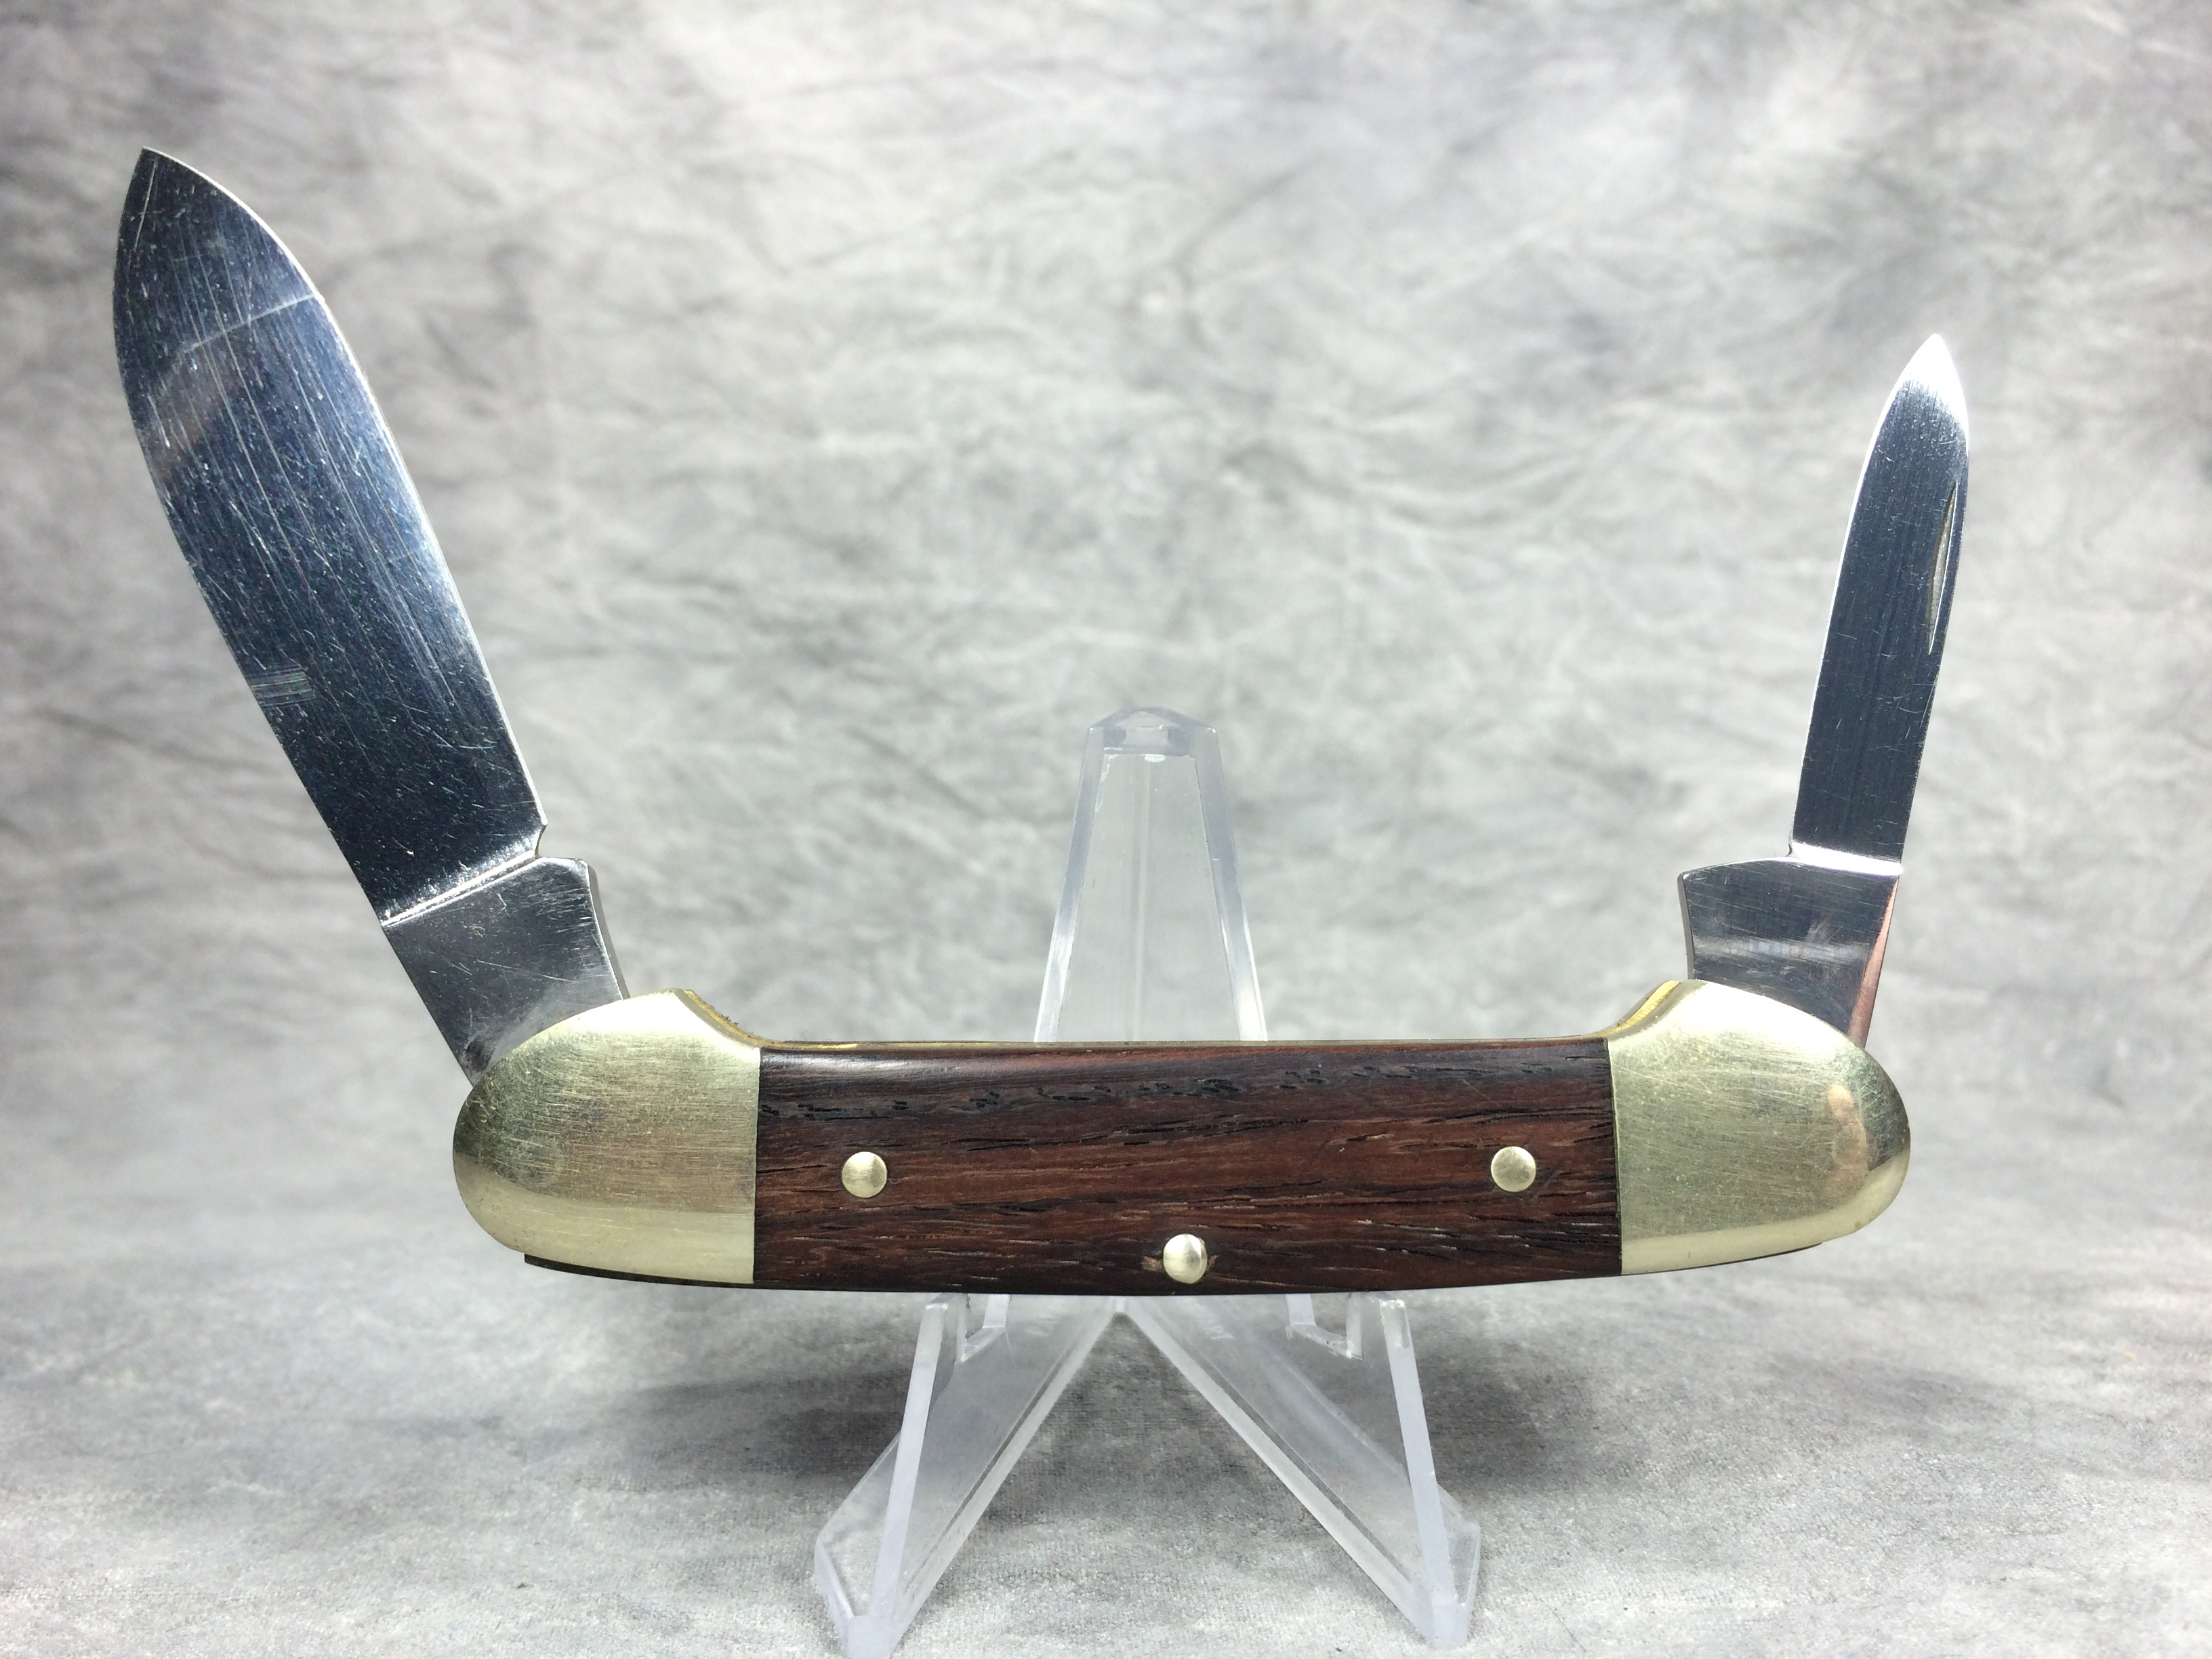 from Declan dating boker tree brand knives